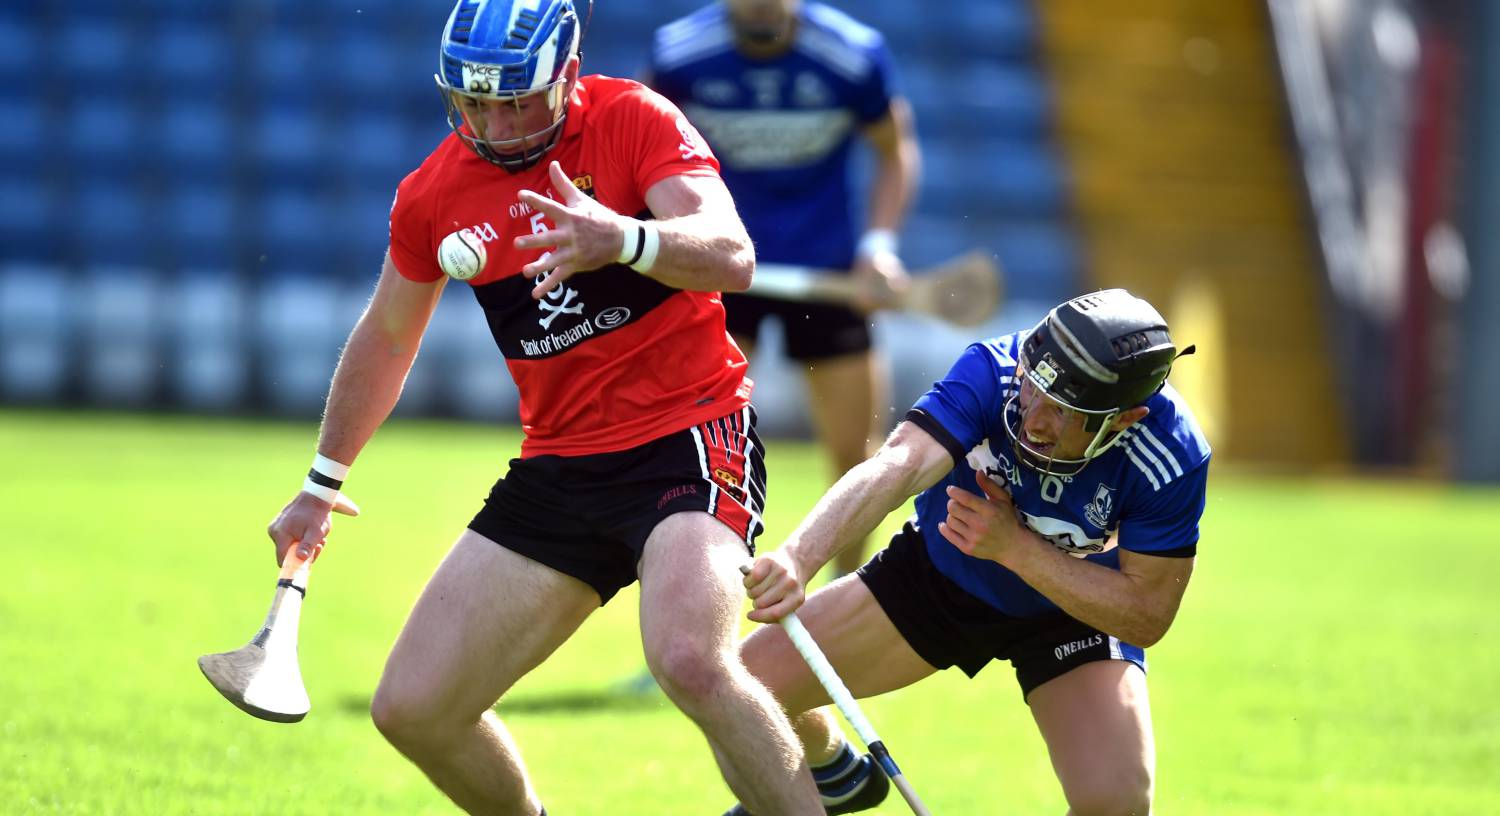 Hurling with cancer: how Sarsfields ace Eoin O'Sullivan took on every obstacle to get back on the field